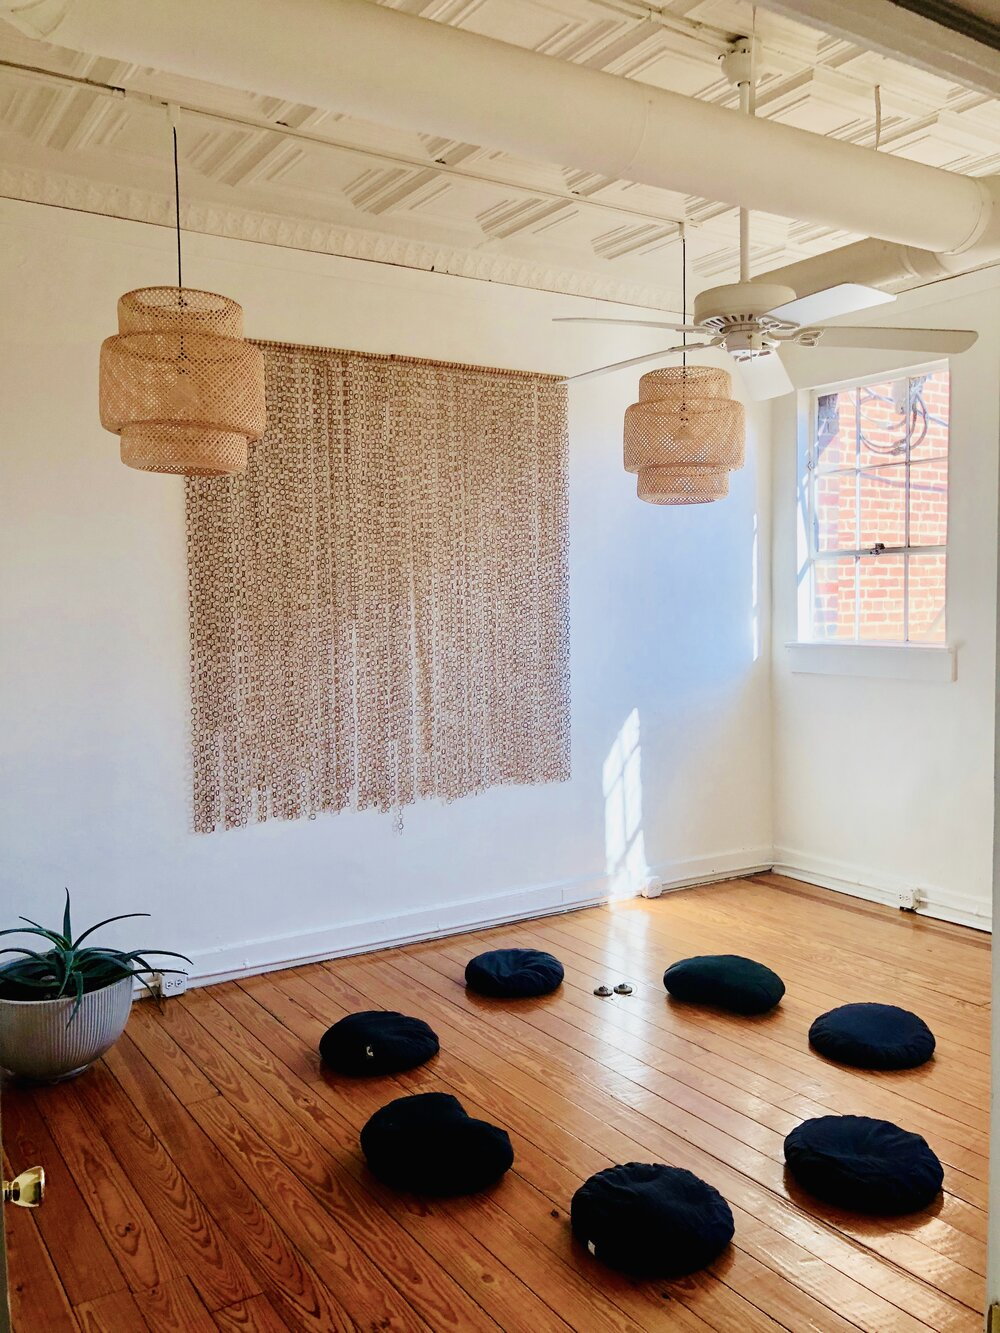 """Dec 31-Jan 1<br/><a href=""""http://www.ashtangayogarichmond.com/workshops-and-events/"""">New Year's Celebration</a>"""